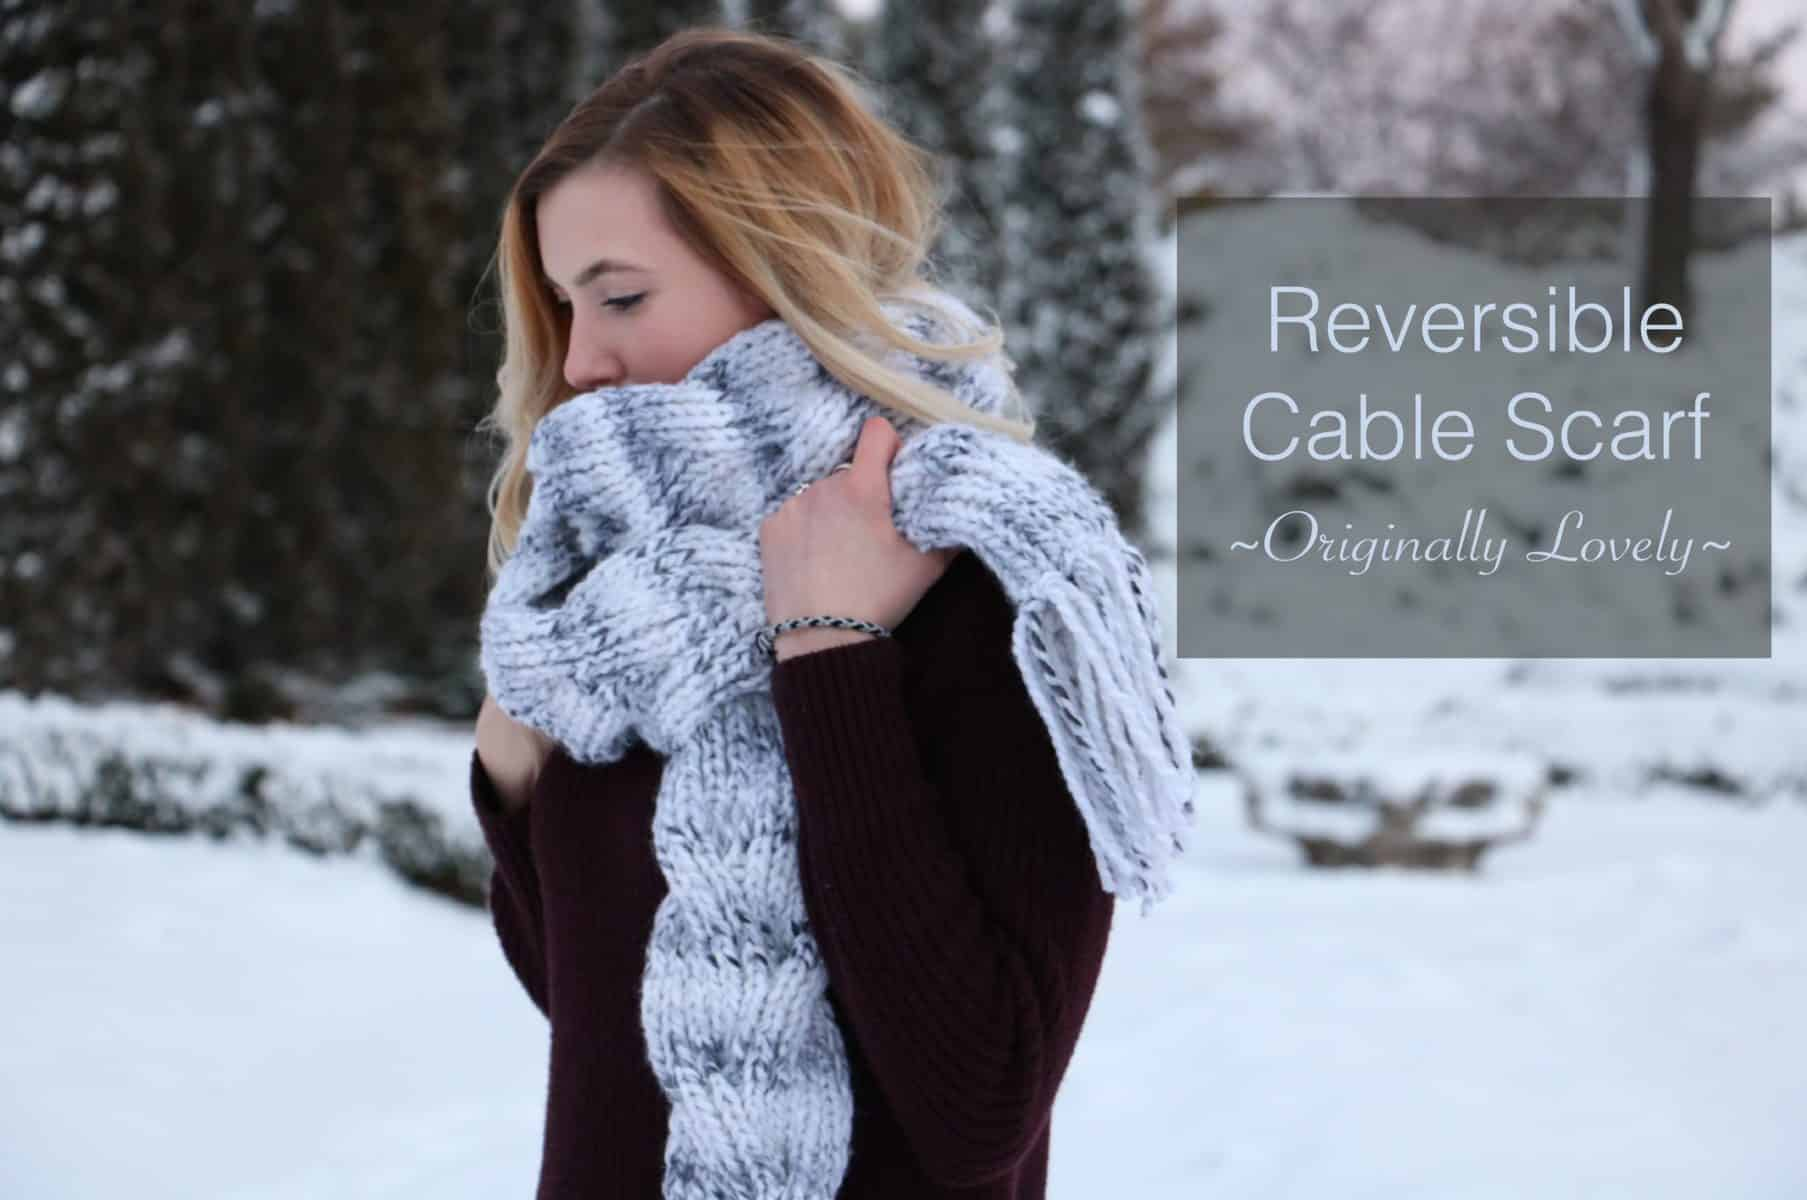 Reversible Cable Scarf Knitting Pattern | Originally Lovely